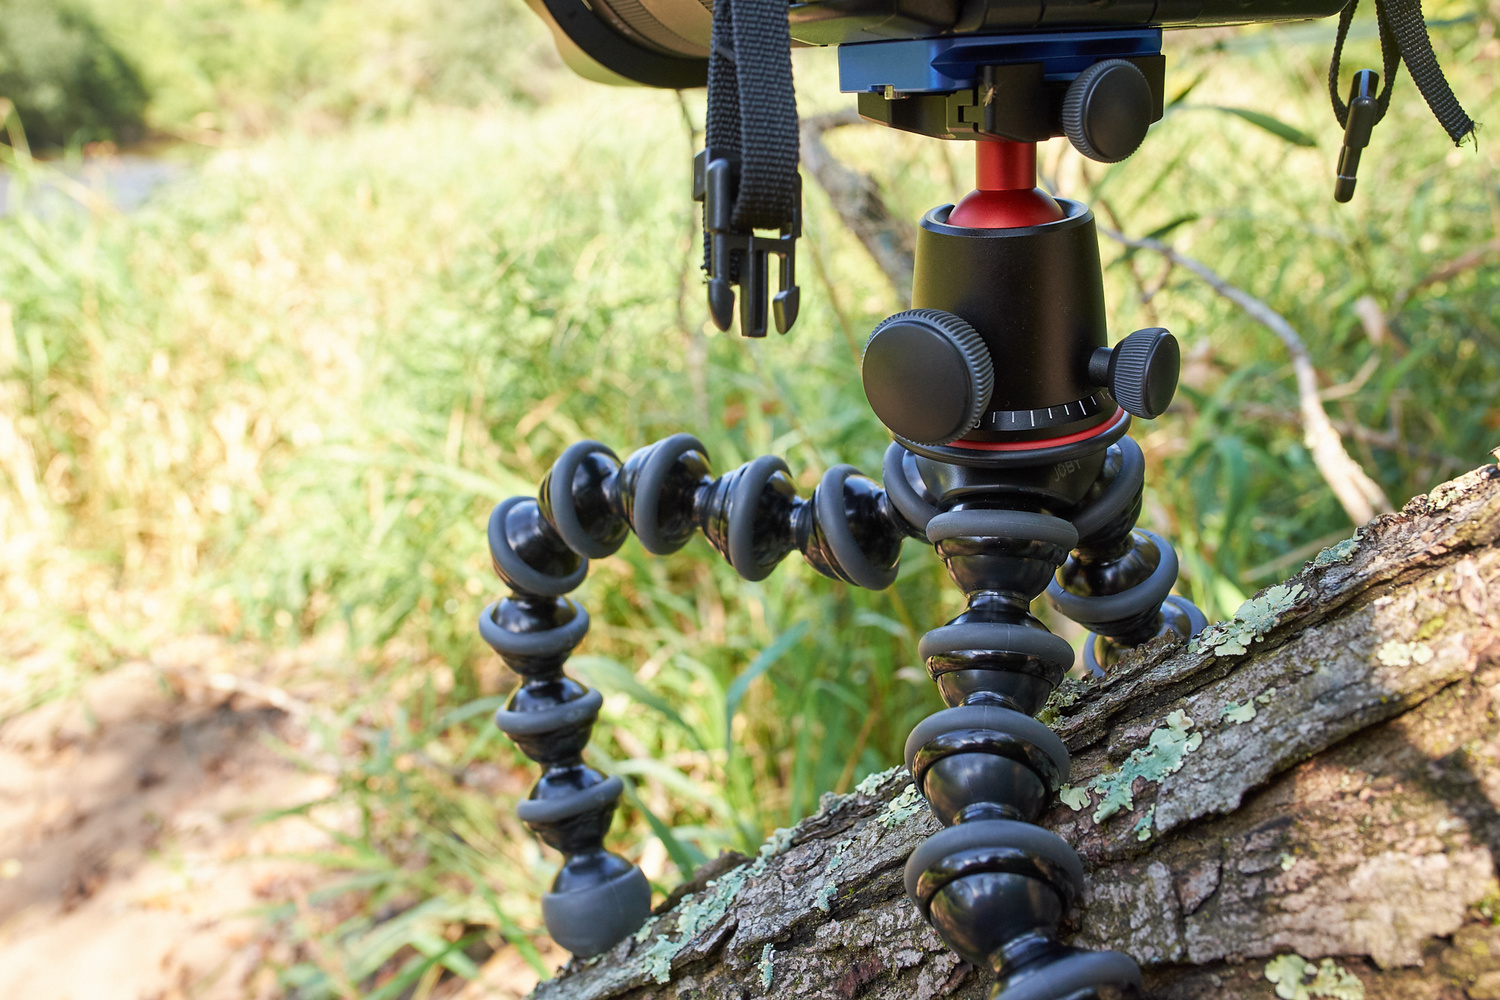 Fstoppers Reviews The Joby Gorillapod 5k Tripod Kit For Dslr Cameras Throw Your Ball Camera To Take Panoramic Photos Panning Base Of Ballhead Features A Numbered Scale Faster More Precise Movements While Capturing Panoramas